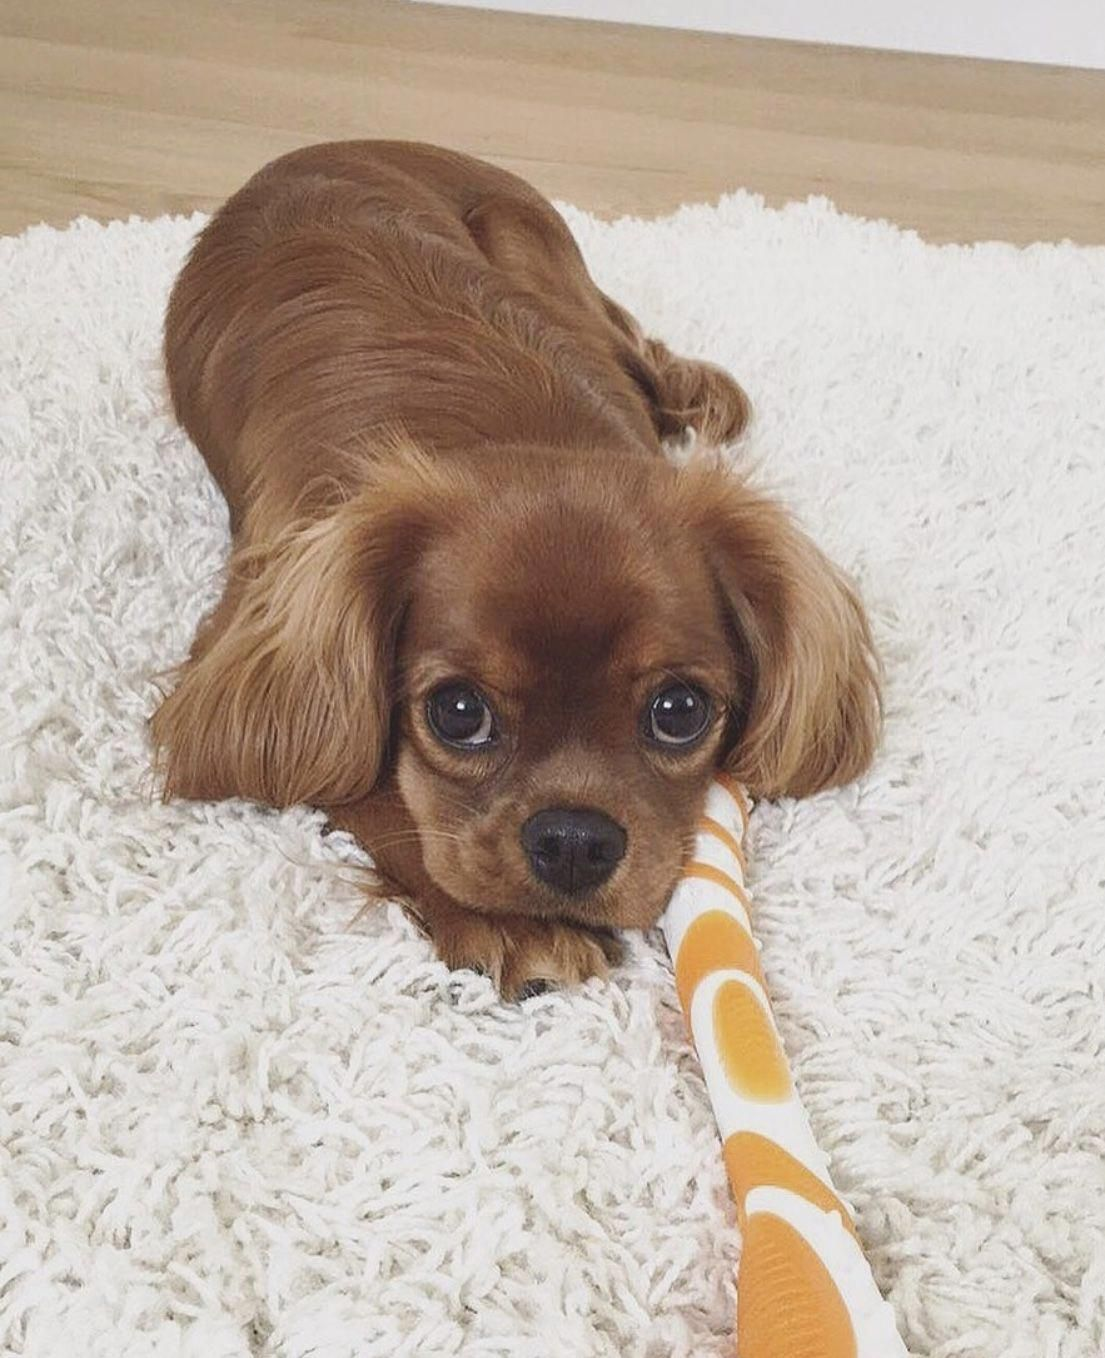 Cavalier King Charles Spaniel Graceful And Affectionate King Charles Cavalier Spaniel Puppy King Charles Dog Cavalier King Charles Dog